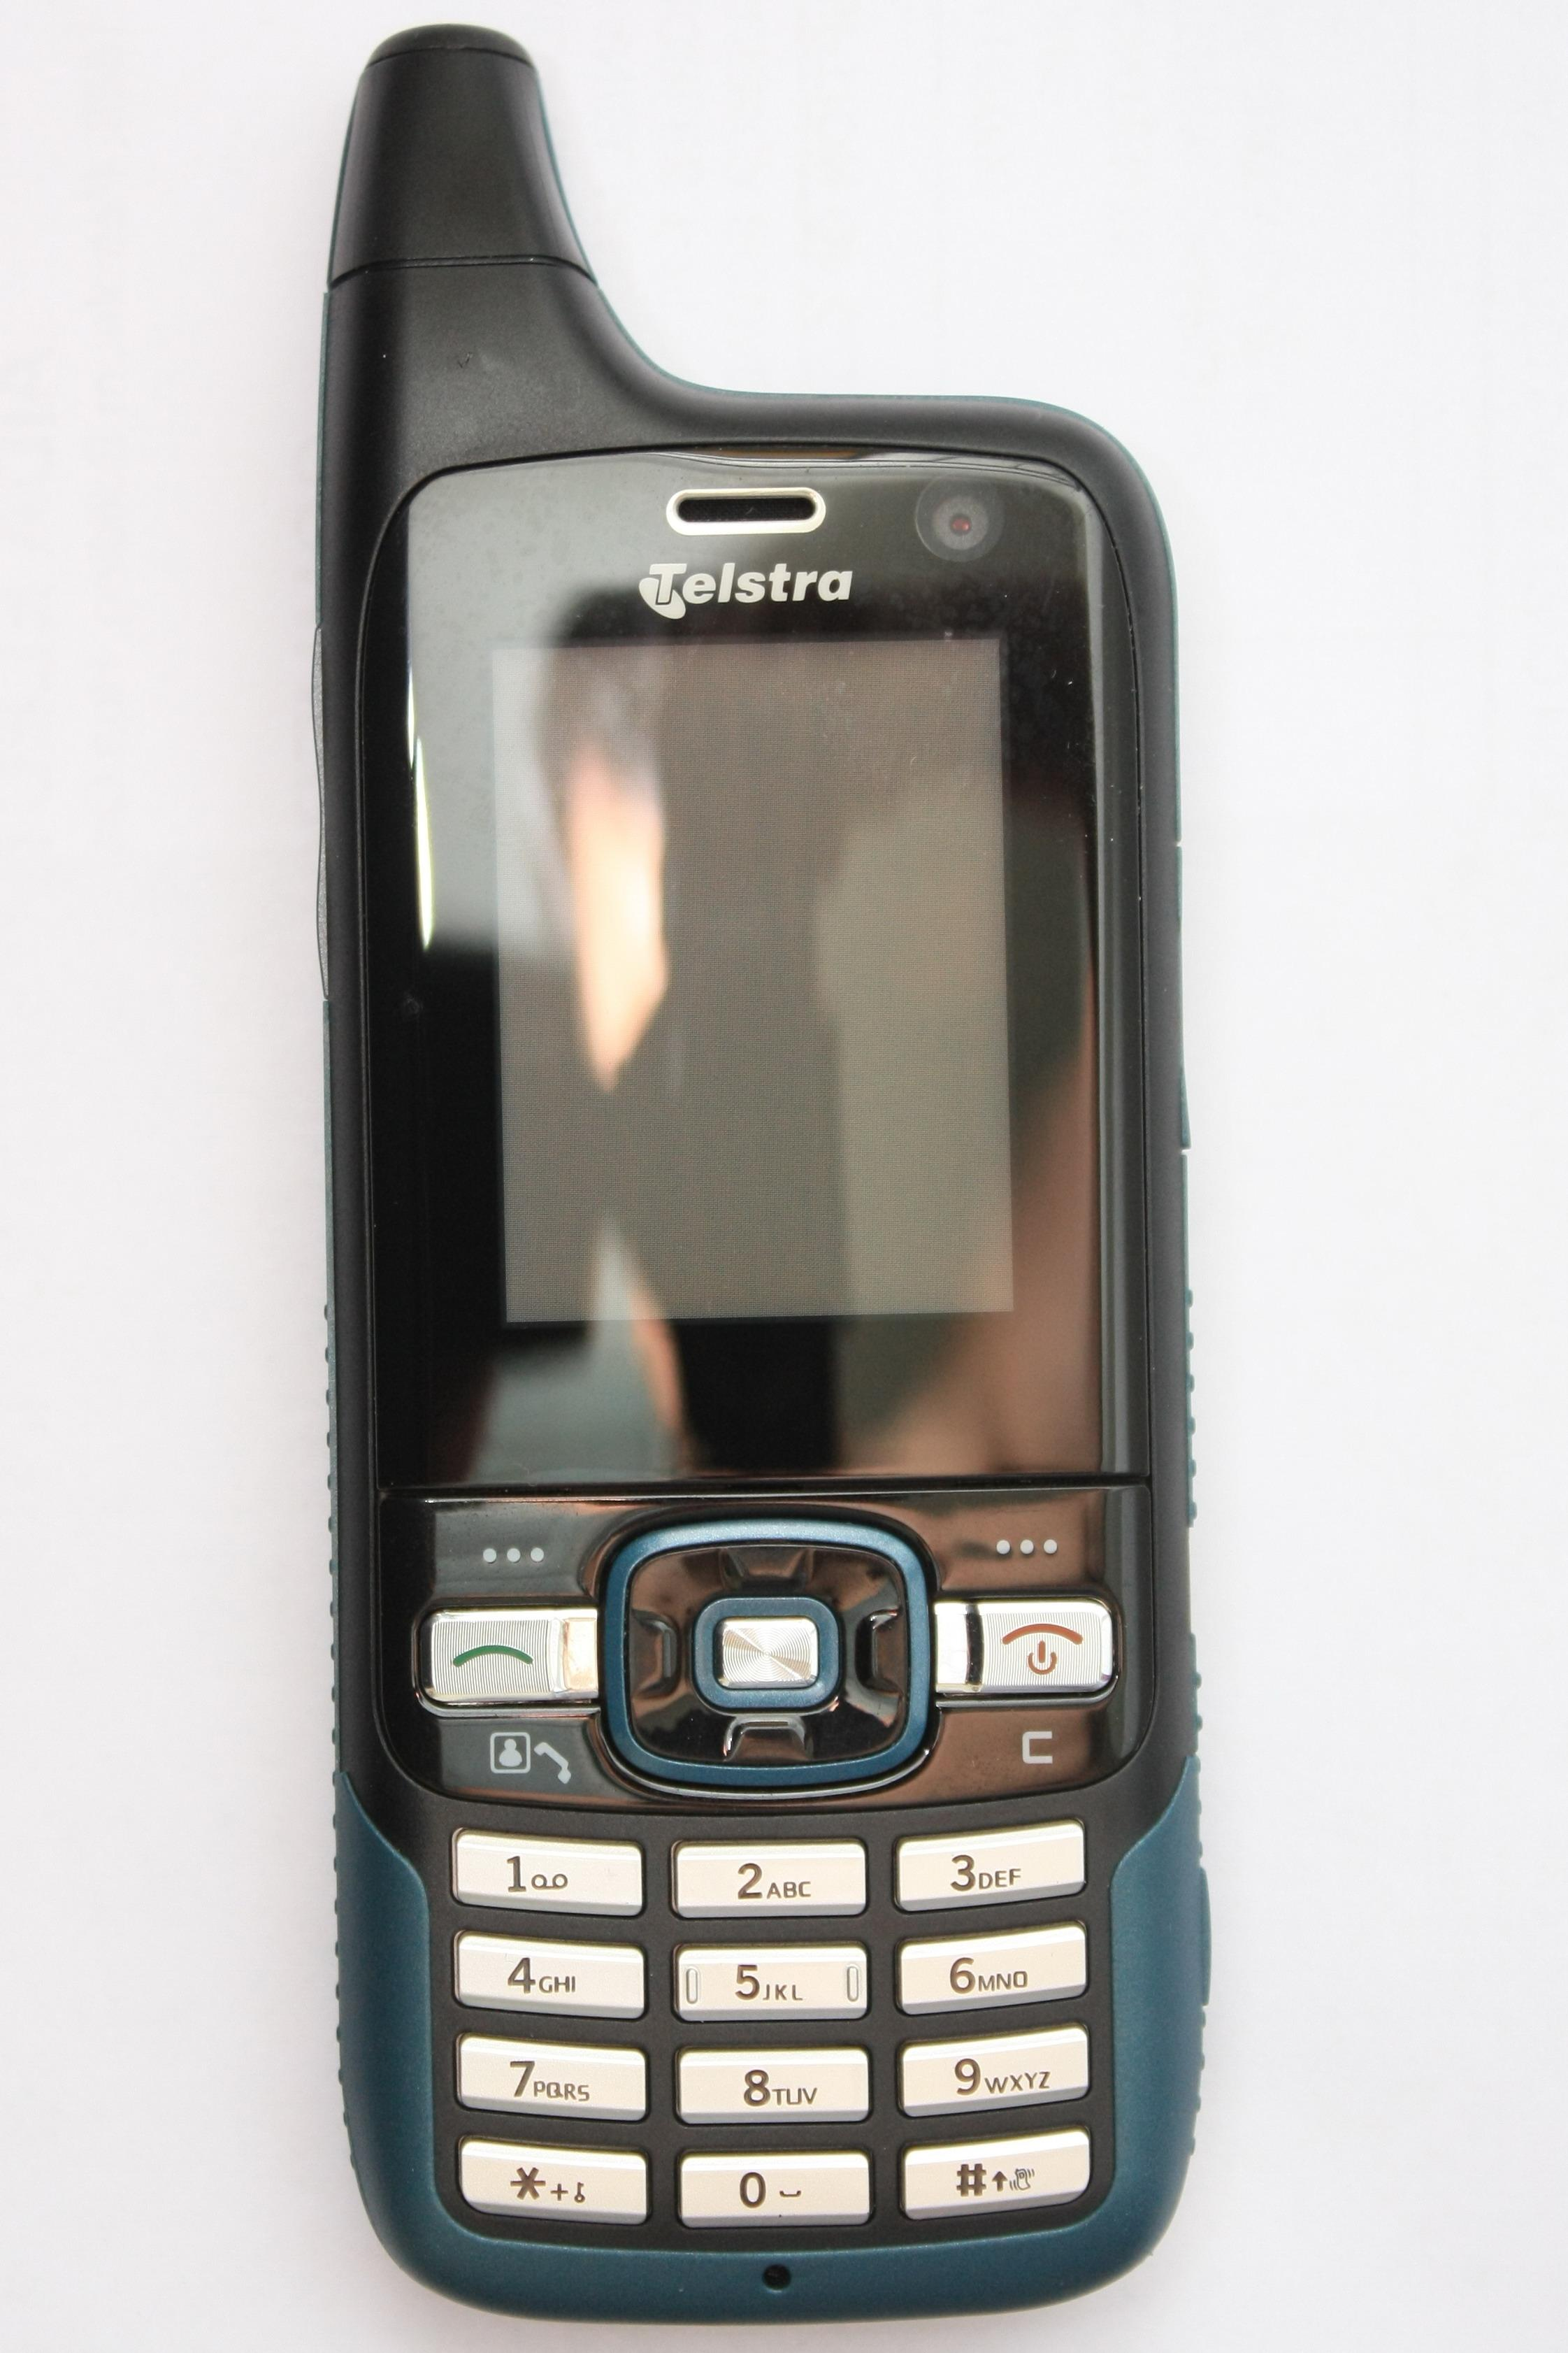 telstra zte t165i email to a friend $ 155 00 $ 345 00 current stock 0